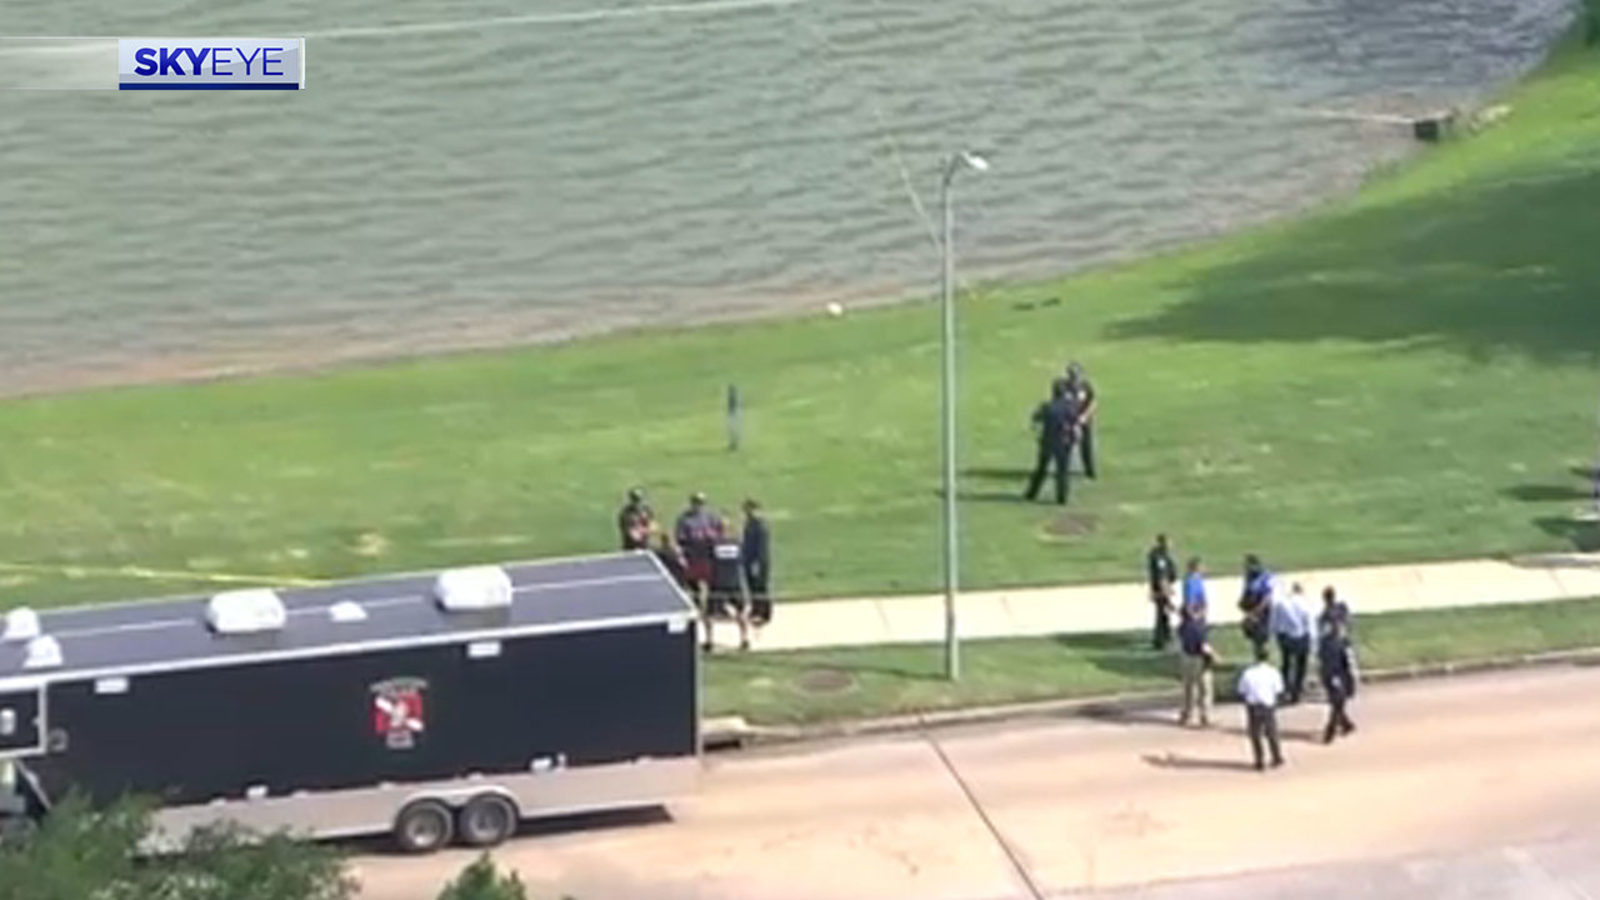 Missing mom Erica Hernandez's vehicle found submerged in Pearland pond